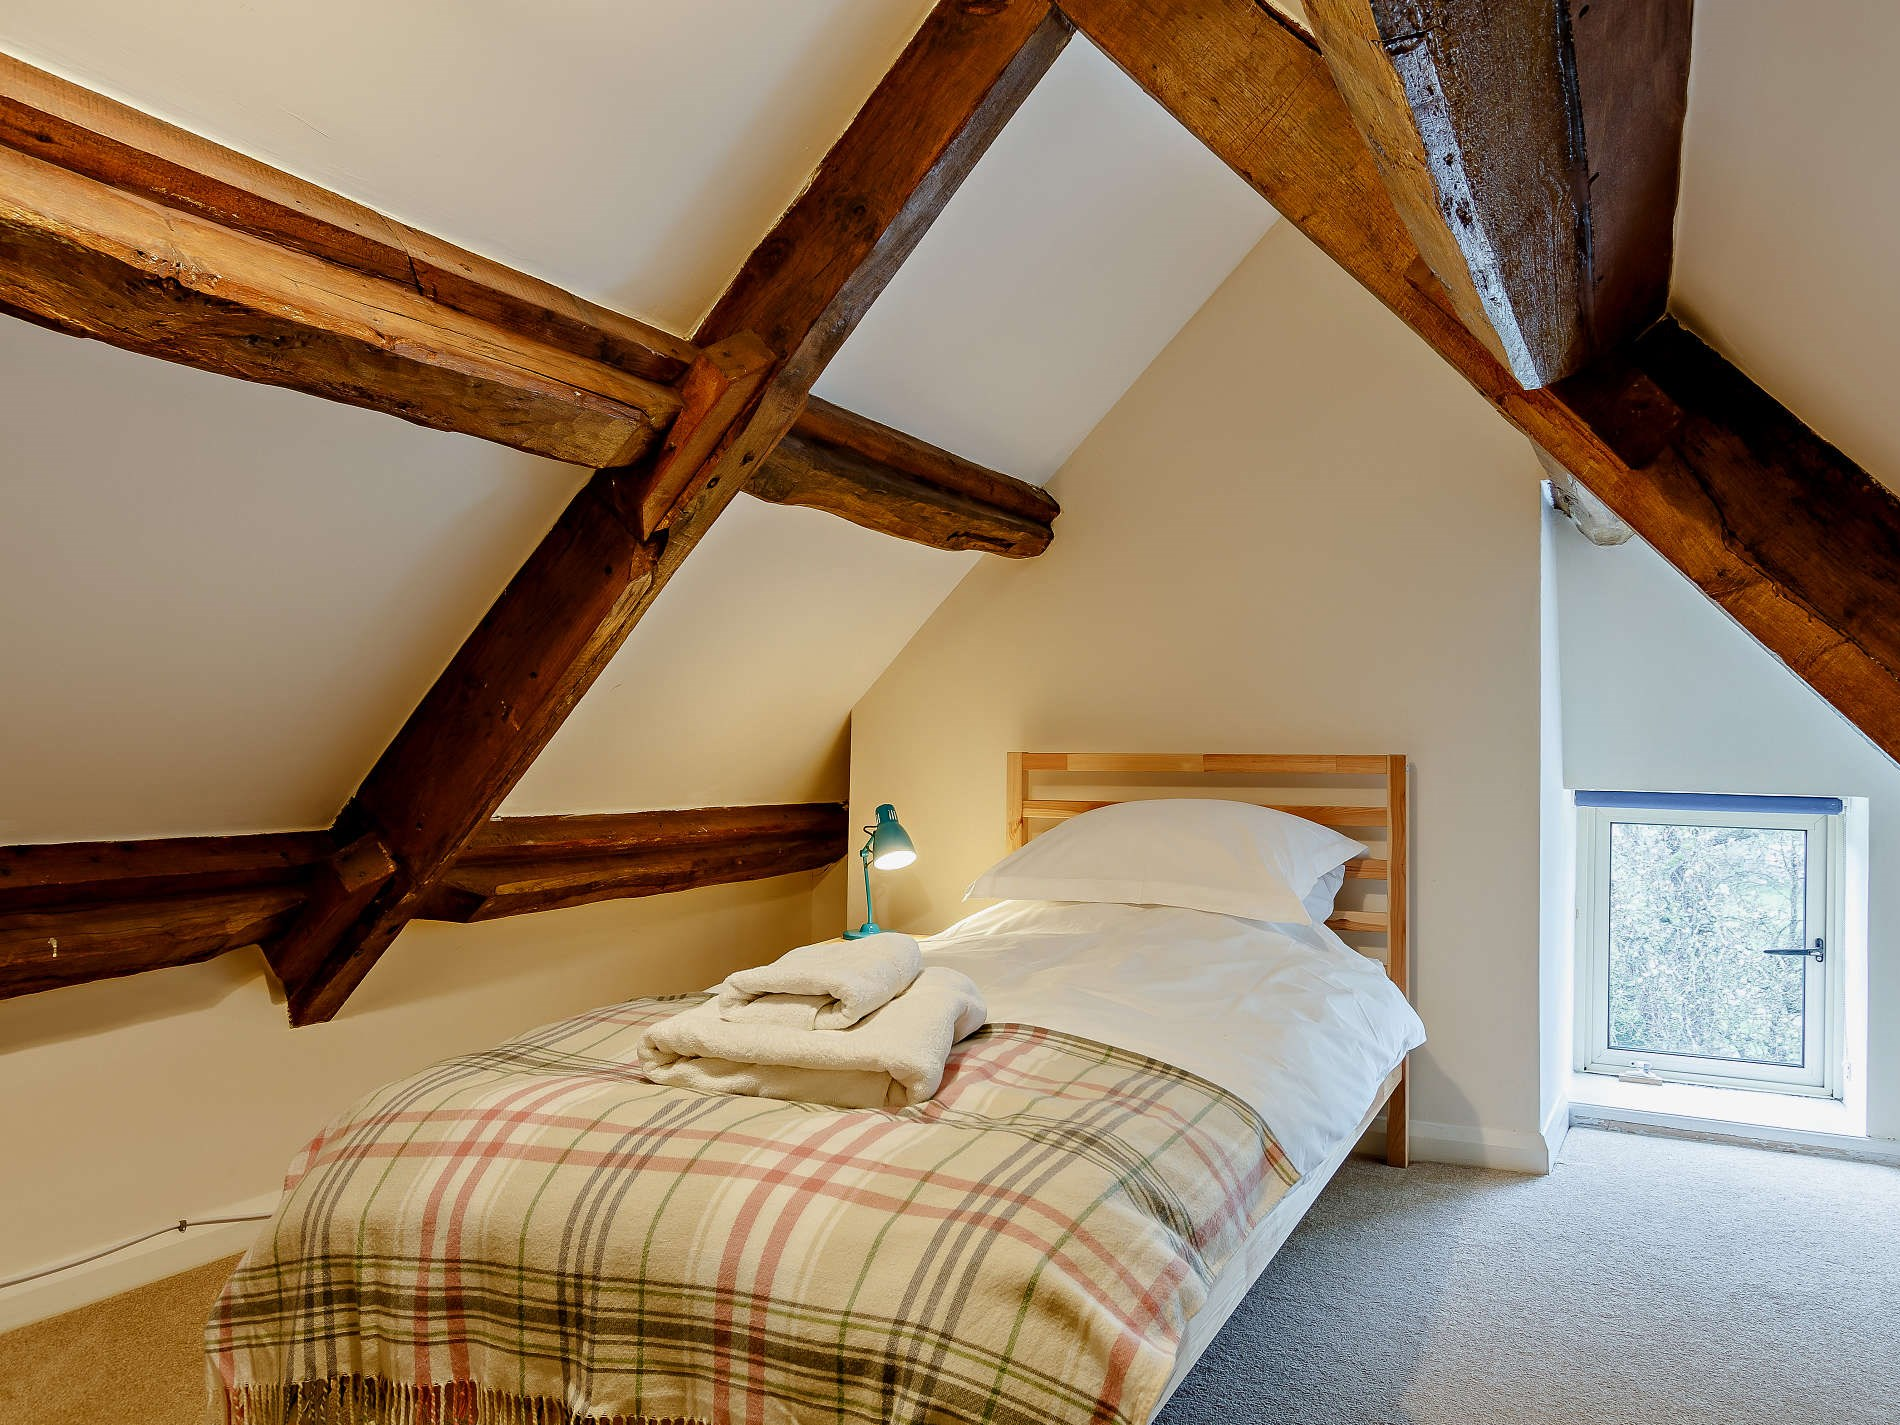 4 Bedroom Cottage in Wotton-under-edge, Heart of England